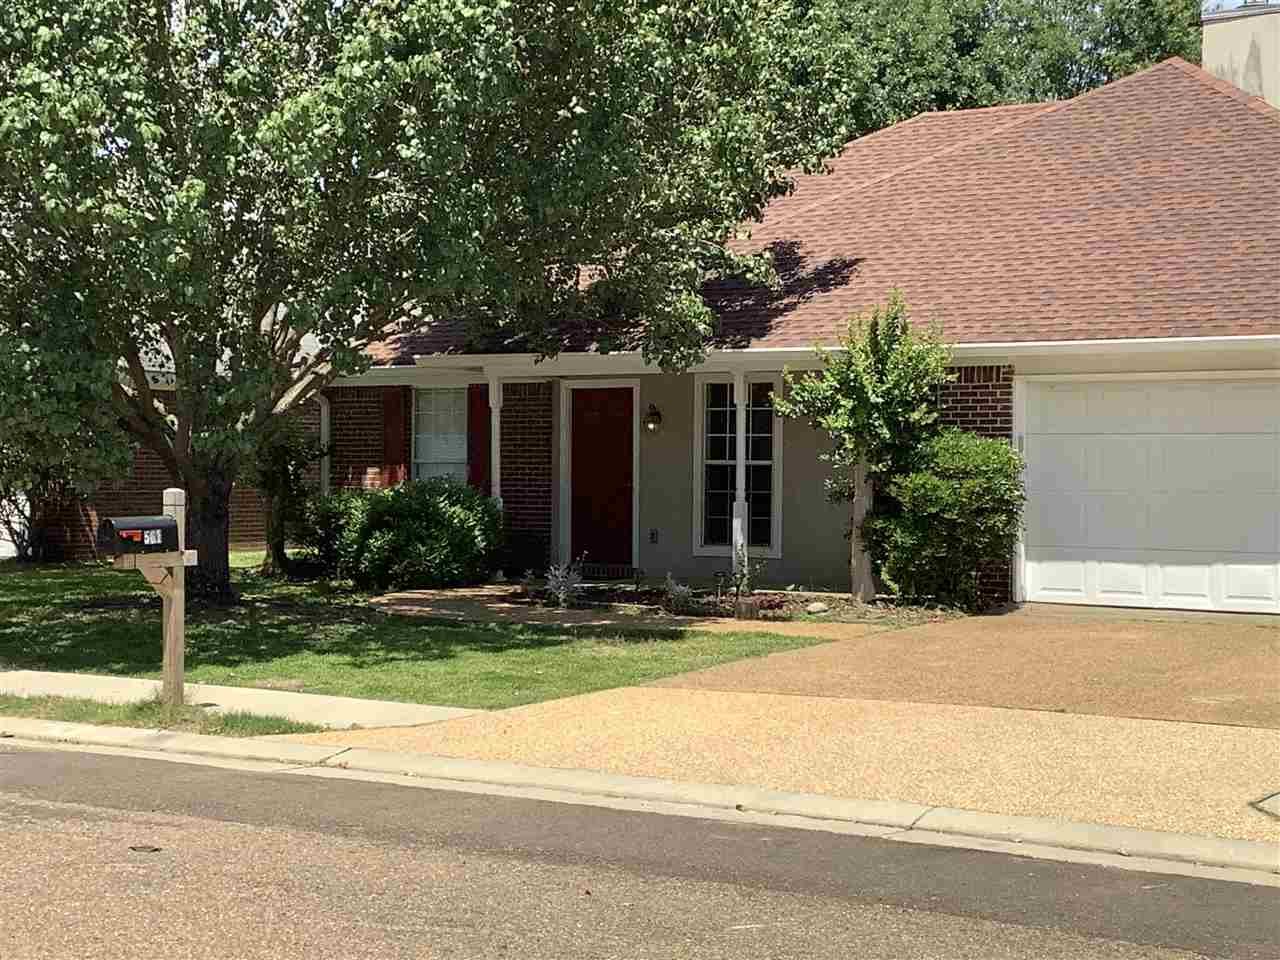 Location Perfect! Come home to 561 Acorn Lane in Oak Grove Subdivision. * Split plan on level lot with front porch * Privacy fenced backyard with 1 large shade tree in the front and in the     backyard.  * Extended covered patio makes outdoor entertaining fun! * Kitchen open to dining room which is open to the living room with gas     fireplace and tray ceiling. * Master Bedroom has Ensuite Bath with Walk in Closet * NEW A/C * NEW Architectural Shingle Roof * NEW Gas Stove * NEW built in microwave * Refrigerator Remains * Close to Reservoir * Close to Dogwood Dining and Shopping Plenty of Space with lots of Storage and natural Light, Don't miss this one!